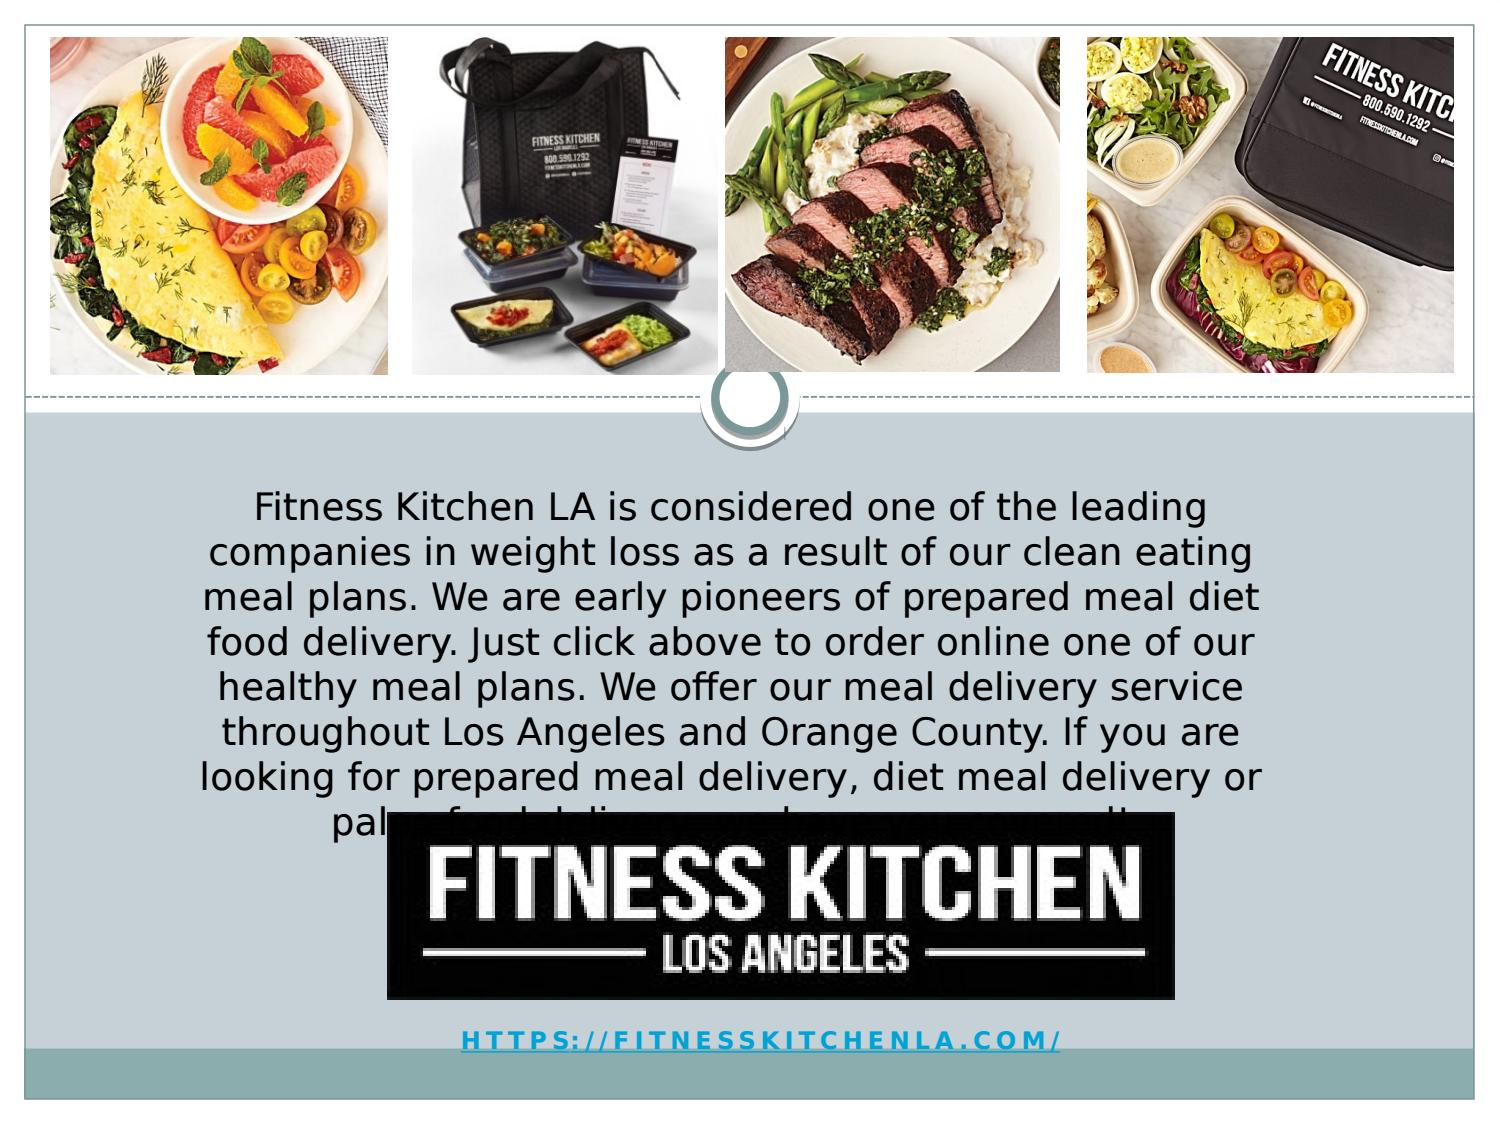 Online Food Delivery and Ingredients | fitnesskitchenla.com by ...